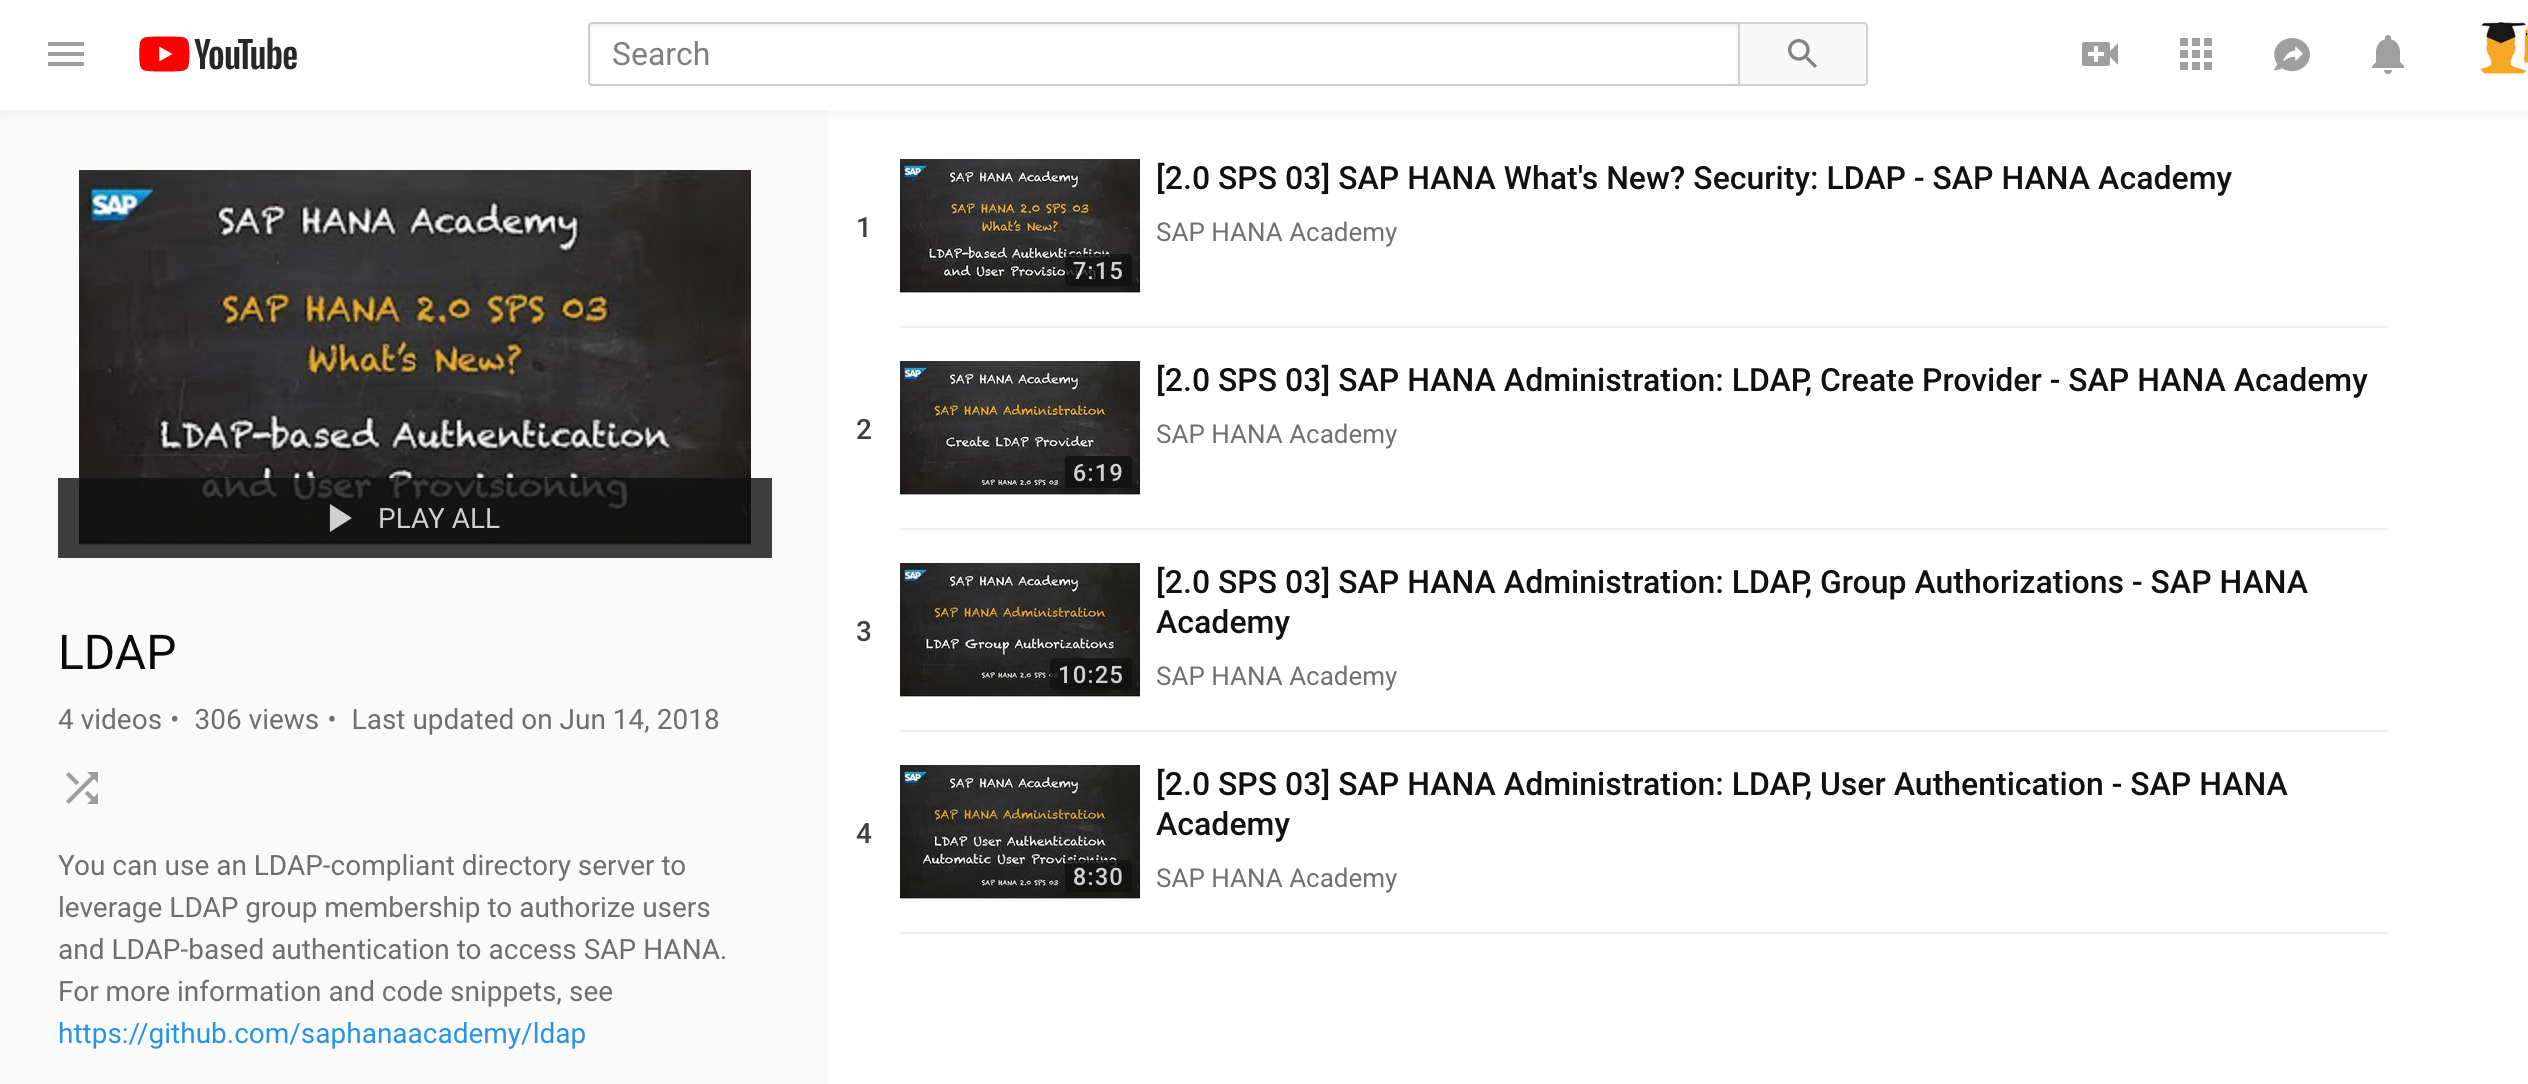 LDAP-based Authentication and User Provisioning for SAP HANA